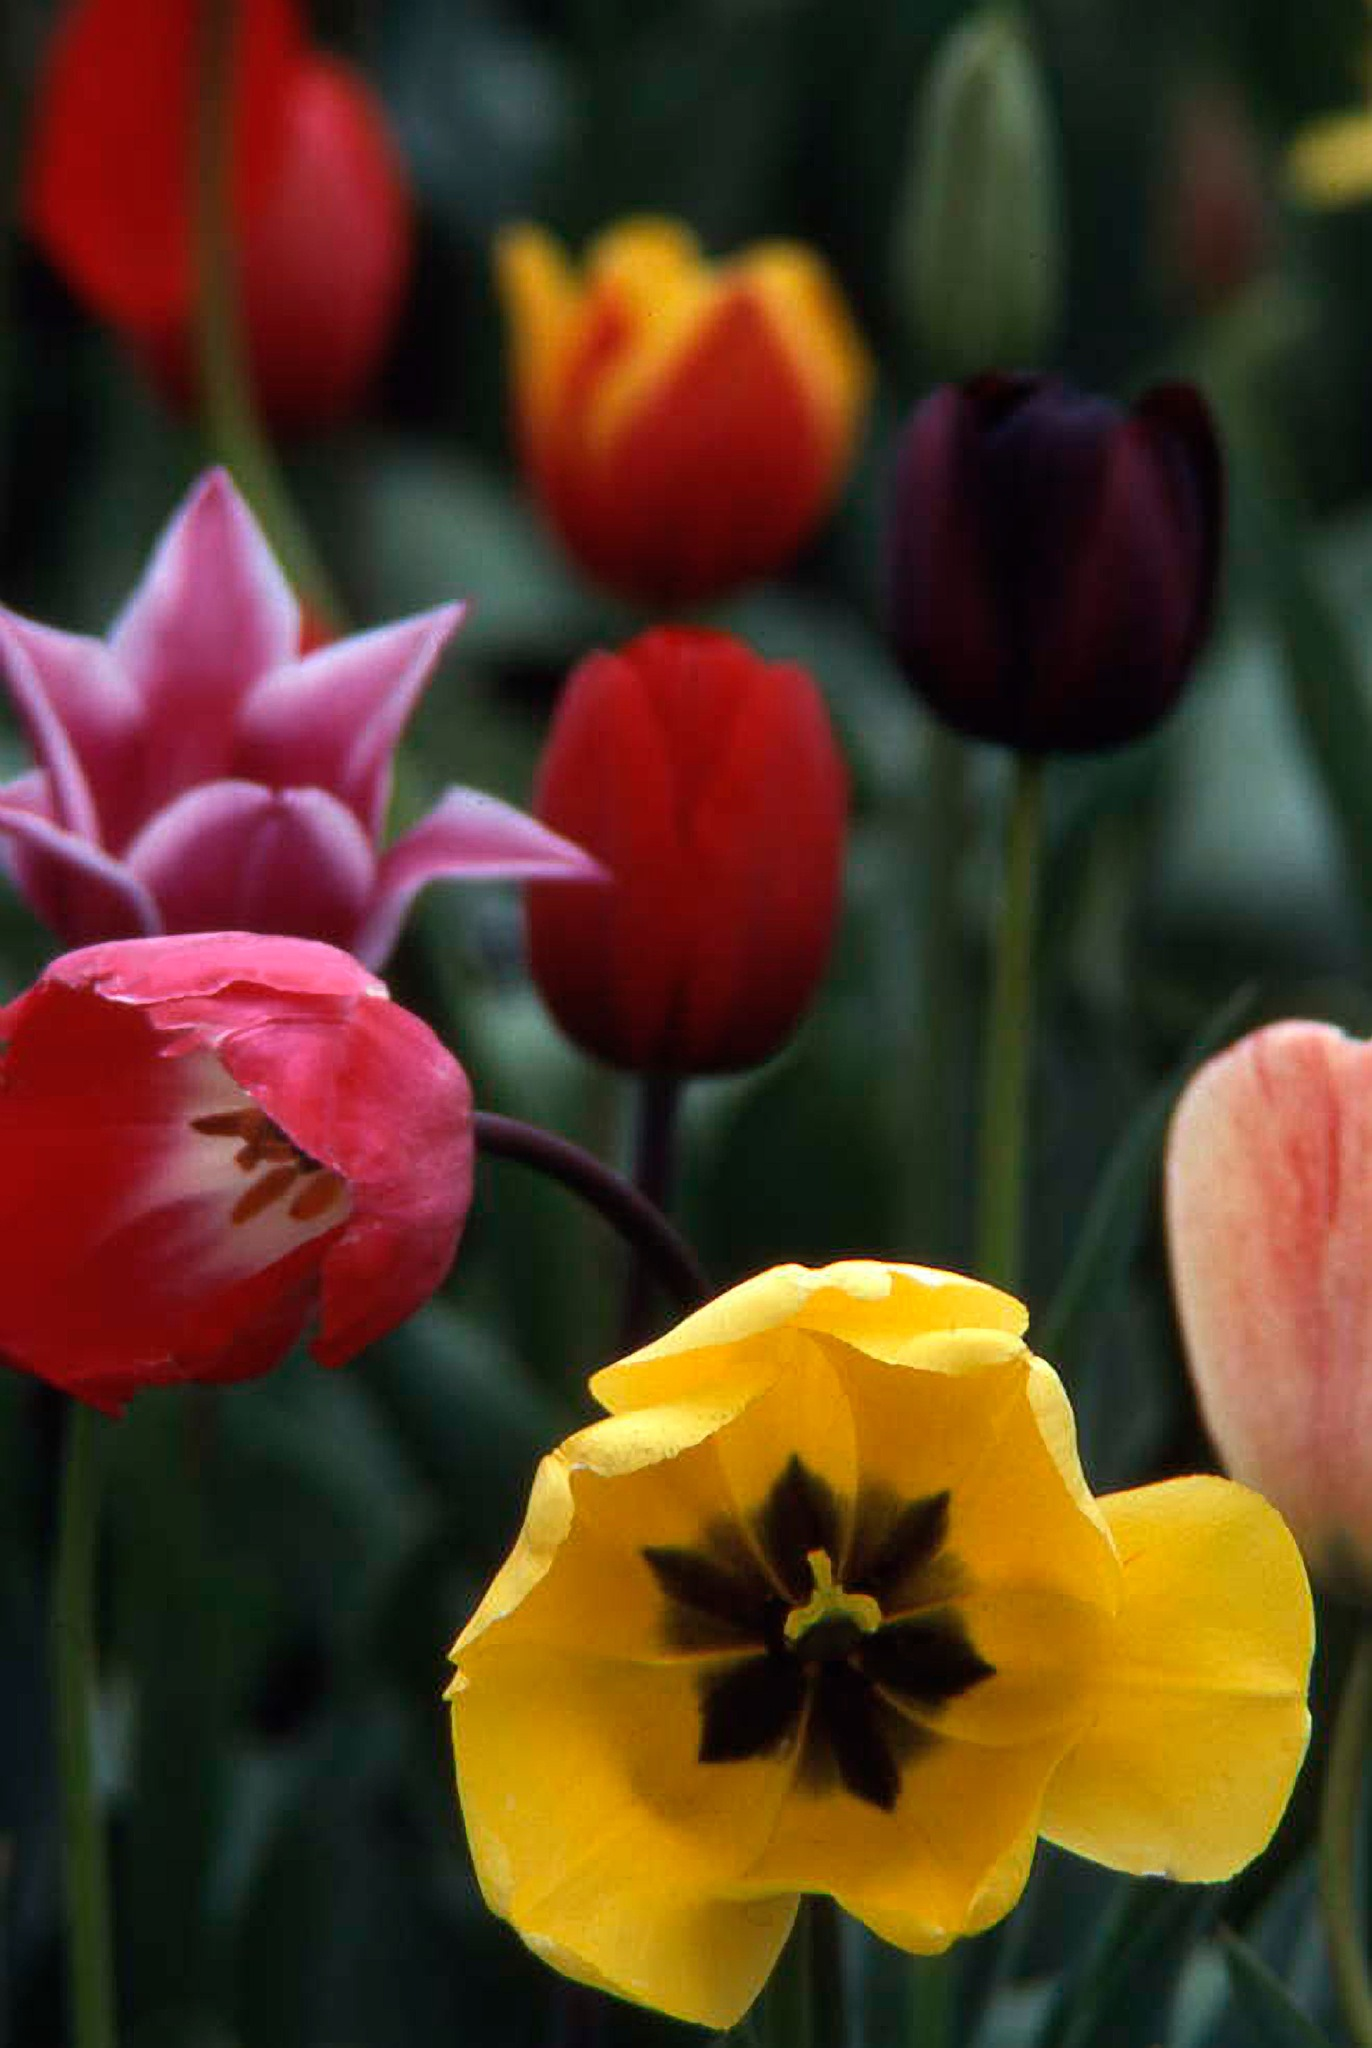 Tulips in the Garden by RenfroPhotography